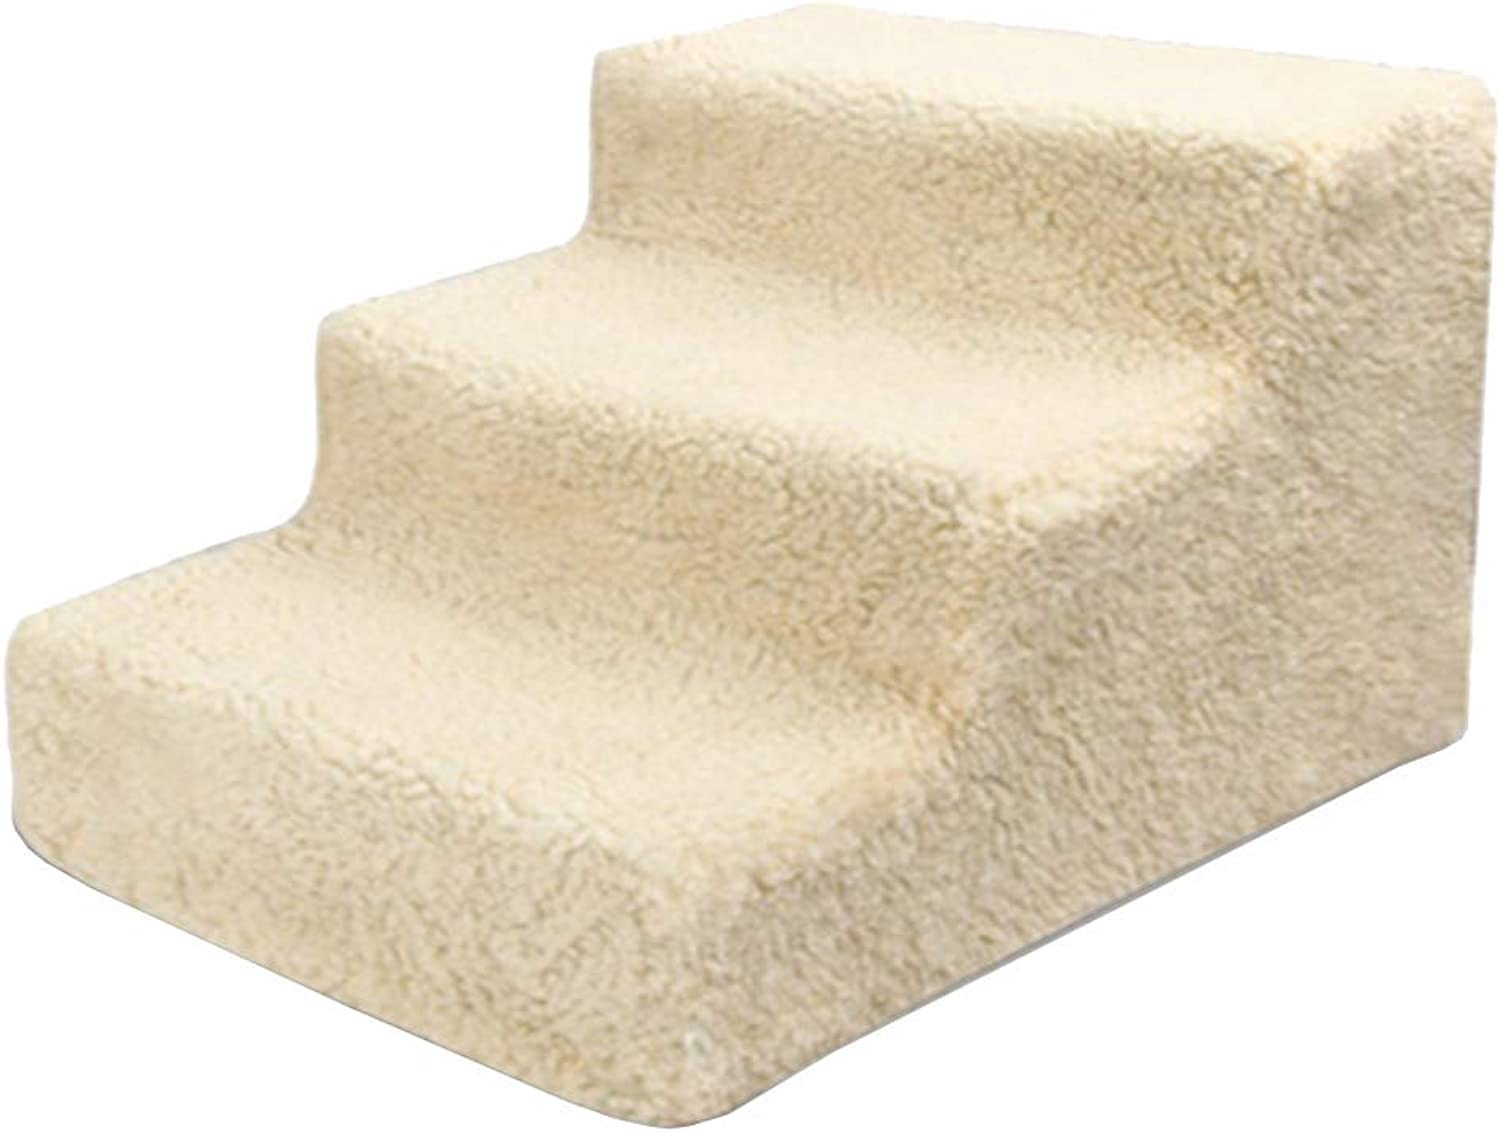 Pet stairs 3Step Dog Ramp Cat Ladder For High Bed Sofa, Washable Removeable Cover, Load 70 Lbs, Khaki